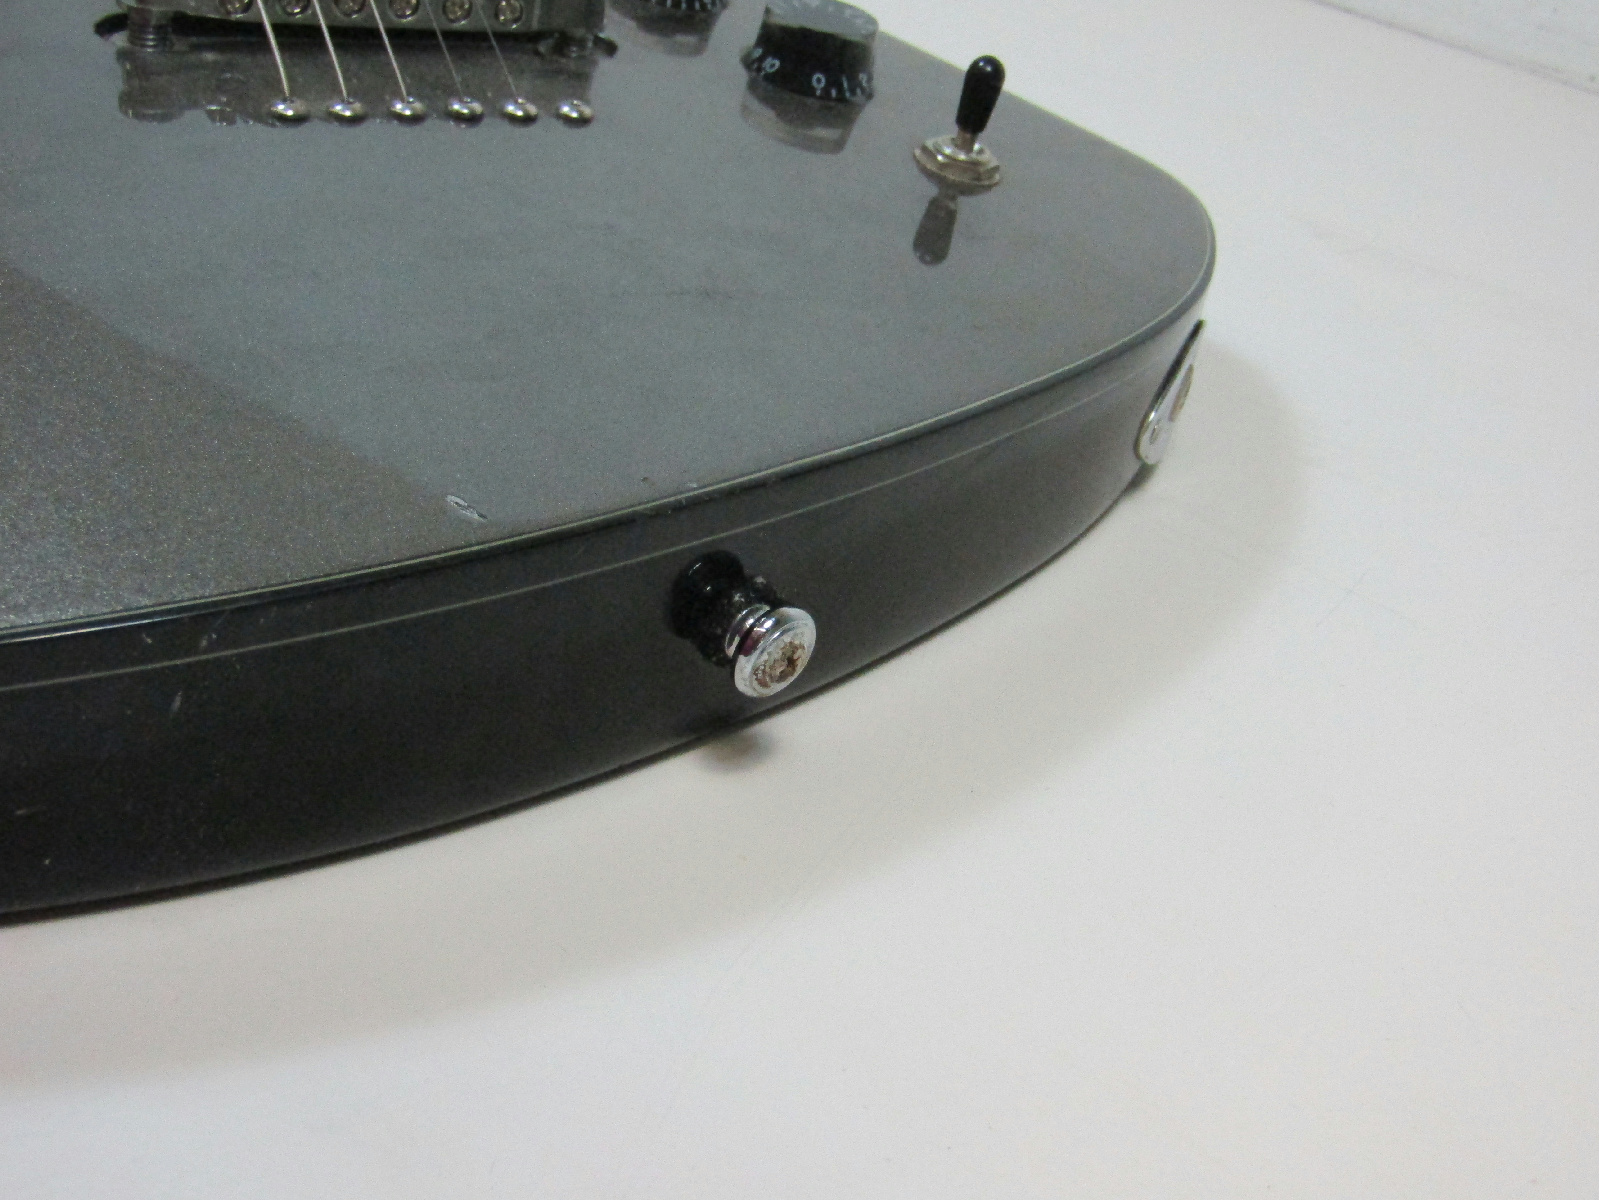 ibanez electric guitar destroyer iceman type body parts or repair. Black Bedroom Furniture Sets. Home Design Ideas